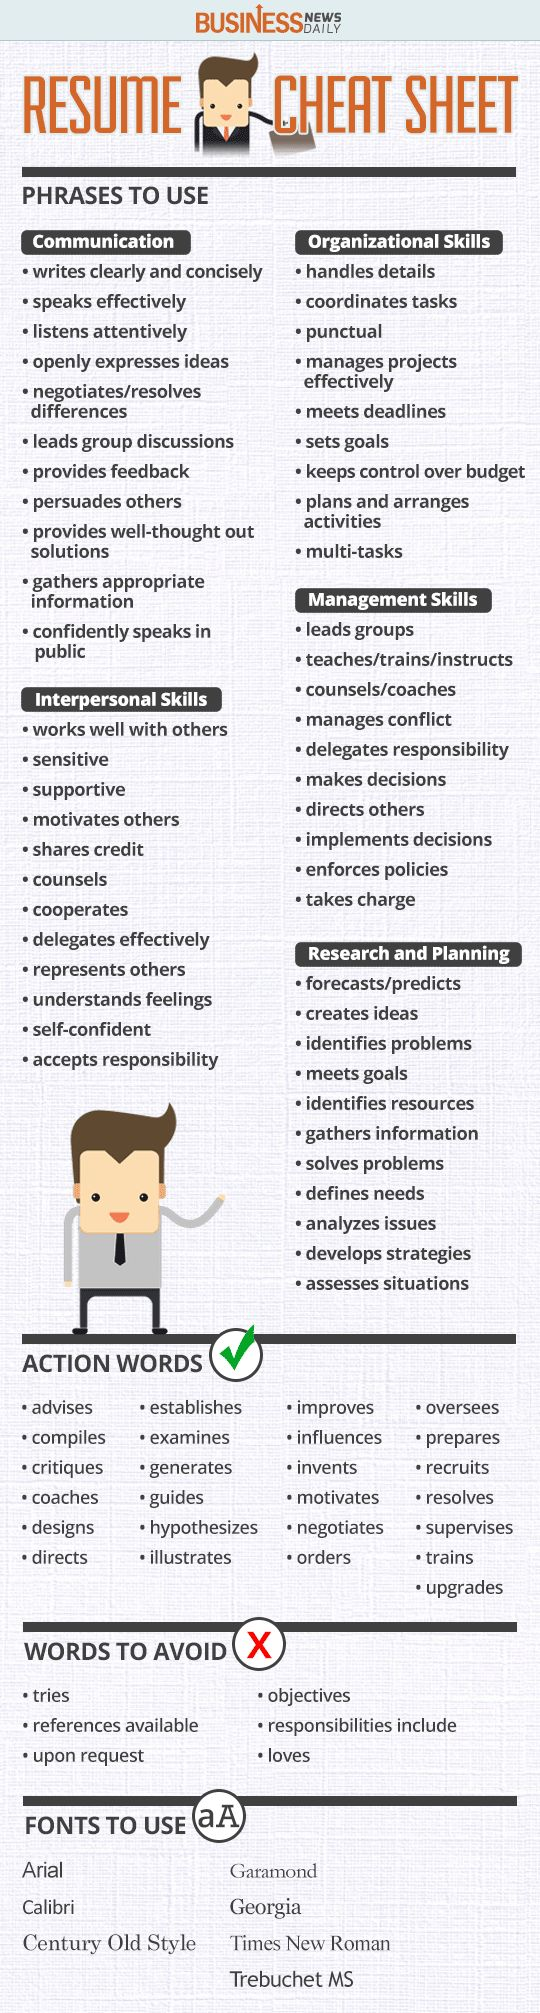 Opposenewapstandardsus  Scenic  Ideas About Resume On Pinterest  Cv Format Resume Cv And  With Exciting Resume Cheat Sheet Infographic Andrews Almost Done With A Complete Unit On Employment Which With Breathtaking How To Make A Quick Resume Also How Do You Create A Resume In Addition Engineering Resume Sample And Executive Summary For Resume As Well As Resume Builder For High School Students Additionally Purpose Of Resume From Pinterestcom With Opposenewapstandardsus  Exciting  Ideas About Resume On Pinterest  Cv Format Resume Cv And  With Breathtaking Resume Cheat Sheet Infographic Andrews Almost Done With A Complete Unit On Employment Which And Scenic How To Make A Quick Resume Also How Do You Create A Resume In Addition Engineering Resume Sample From Pinterestcom